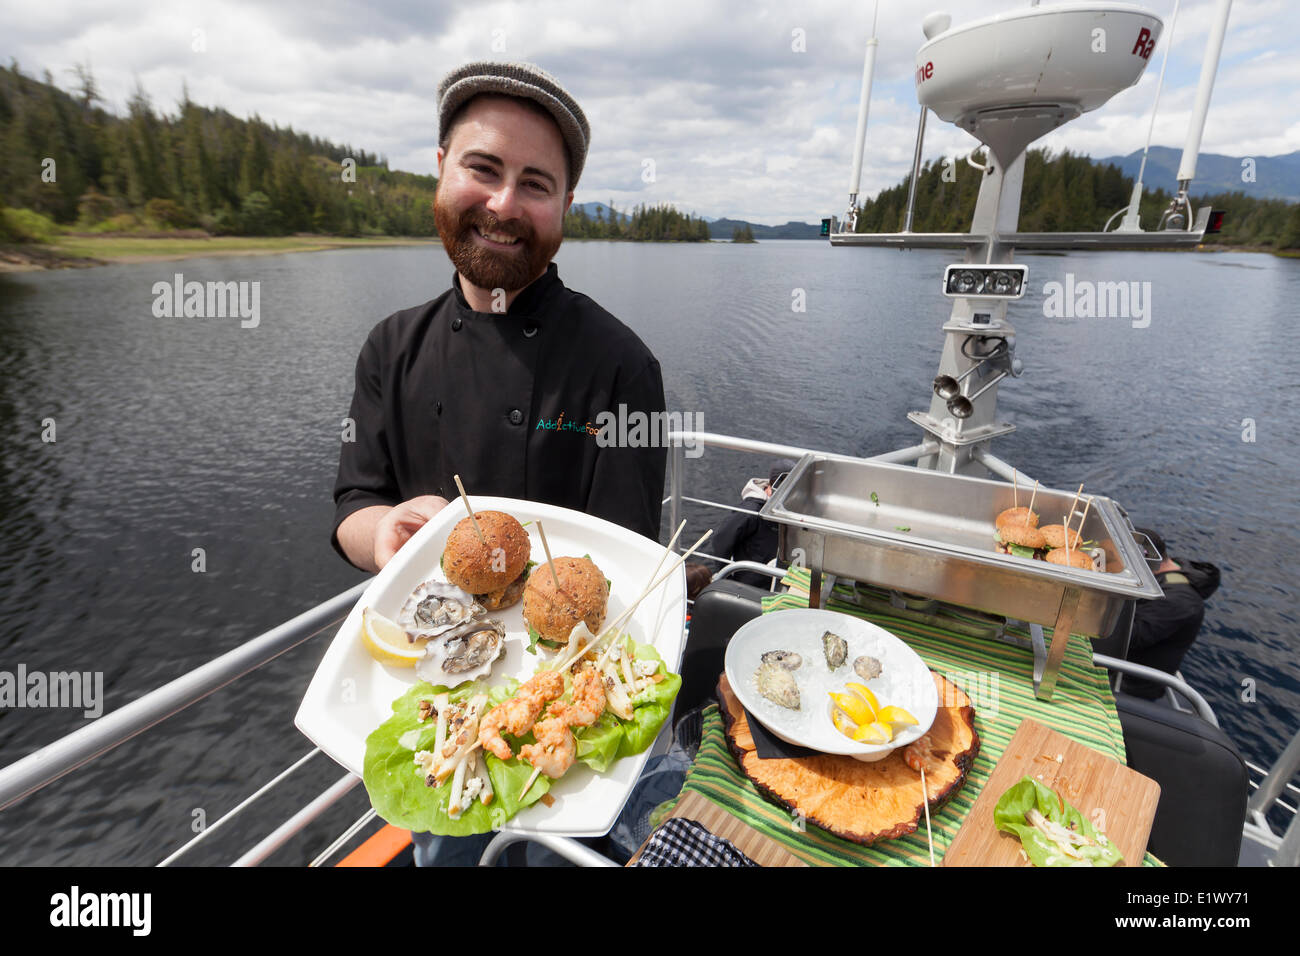 A smiling chef aboard a West Coast Safari tour boat presents a fresh bounty food for passengers to eat.  Browning - Stock Image